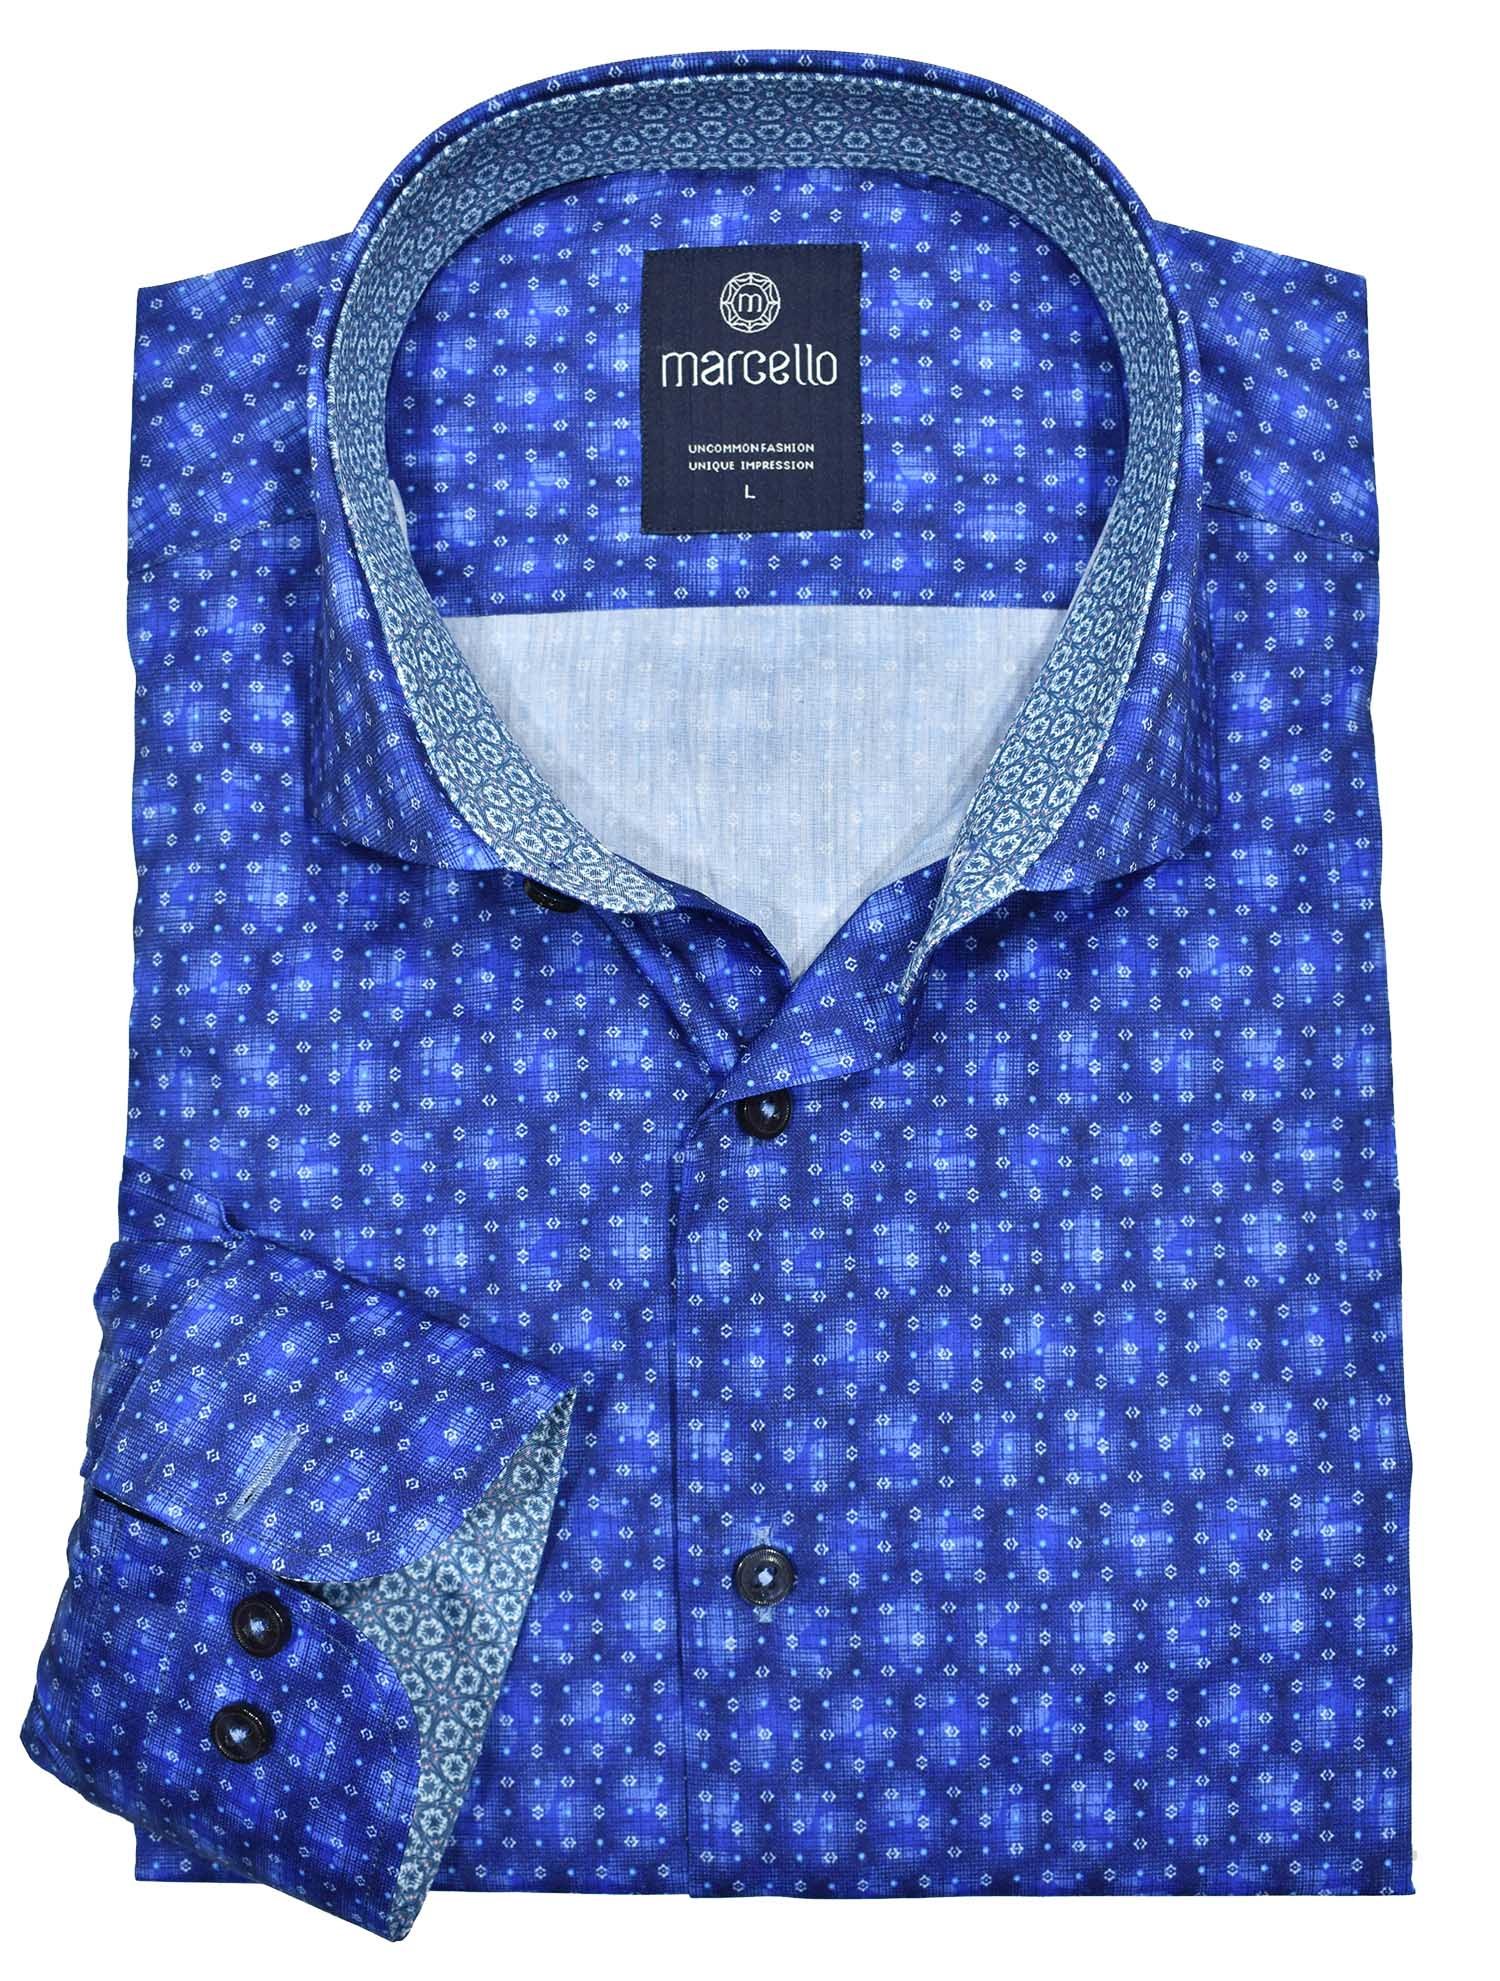 W243 Royal Azure Performance Shirt - Marcello Sport